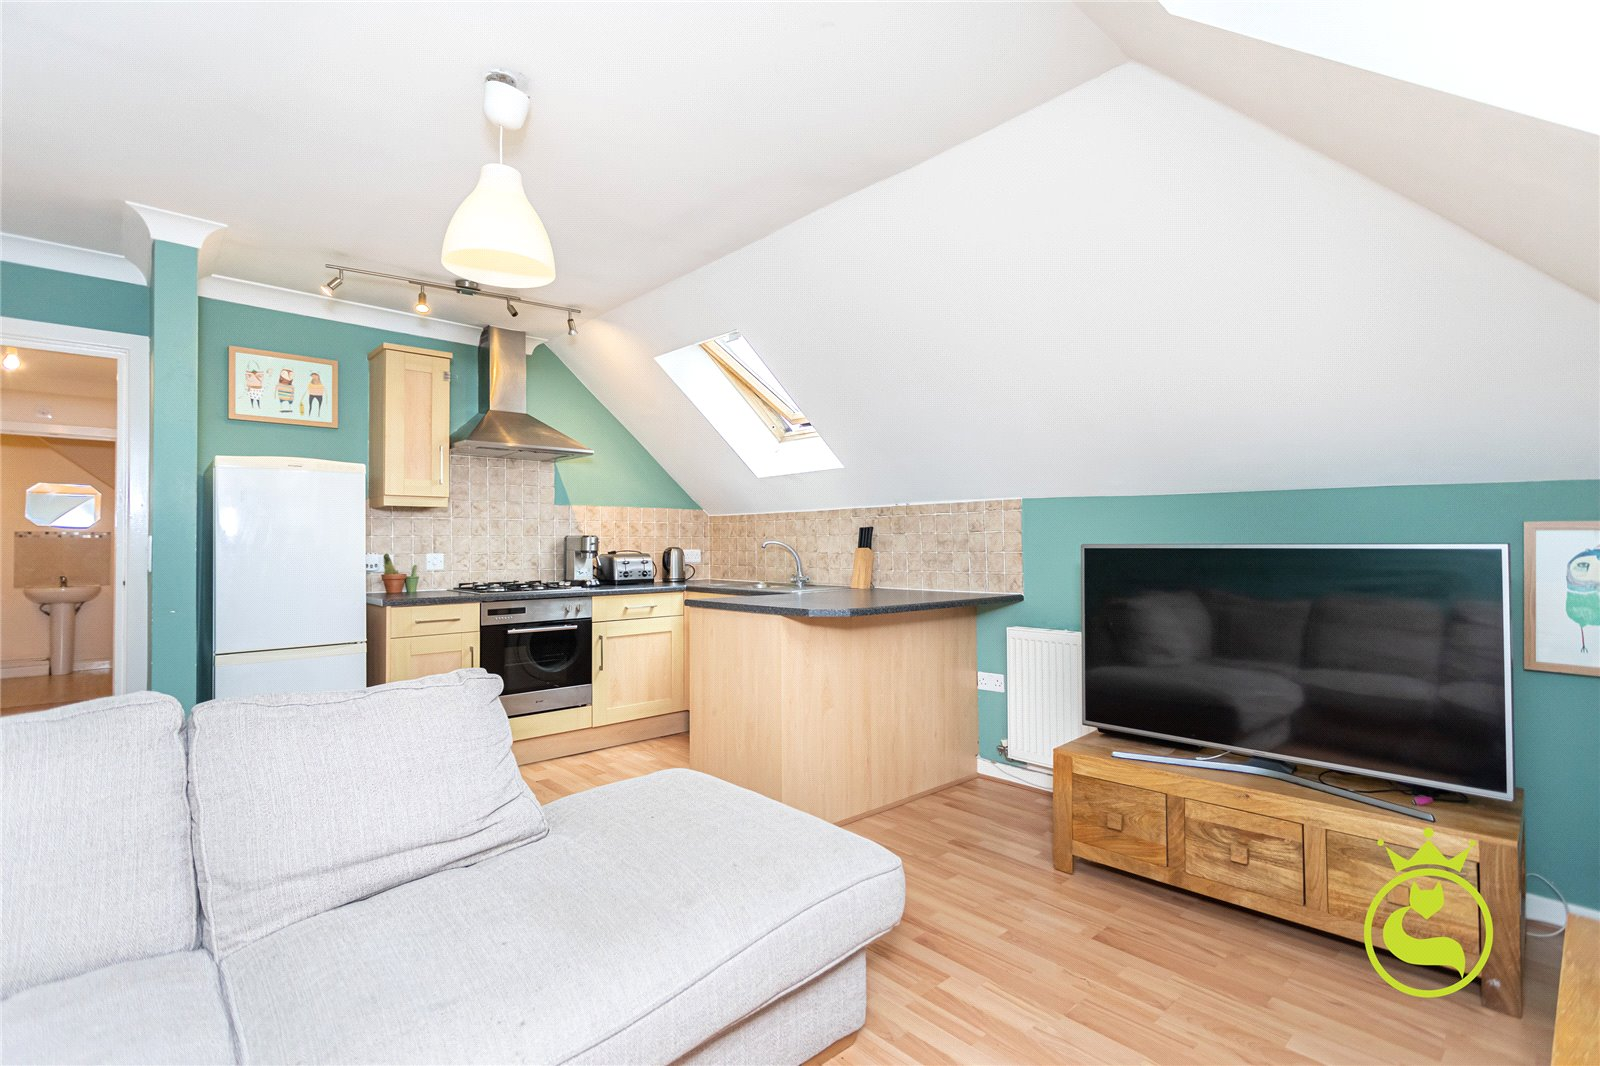 2 bed apartment to rent in Kingsholme, 148 Richmond Park Road - Property Image 1